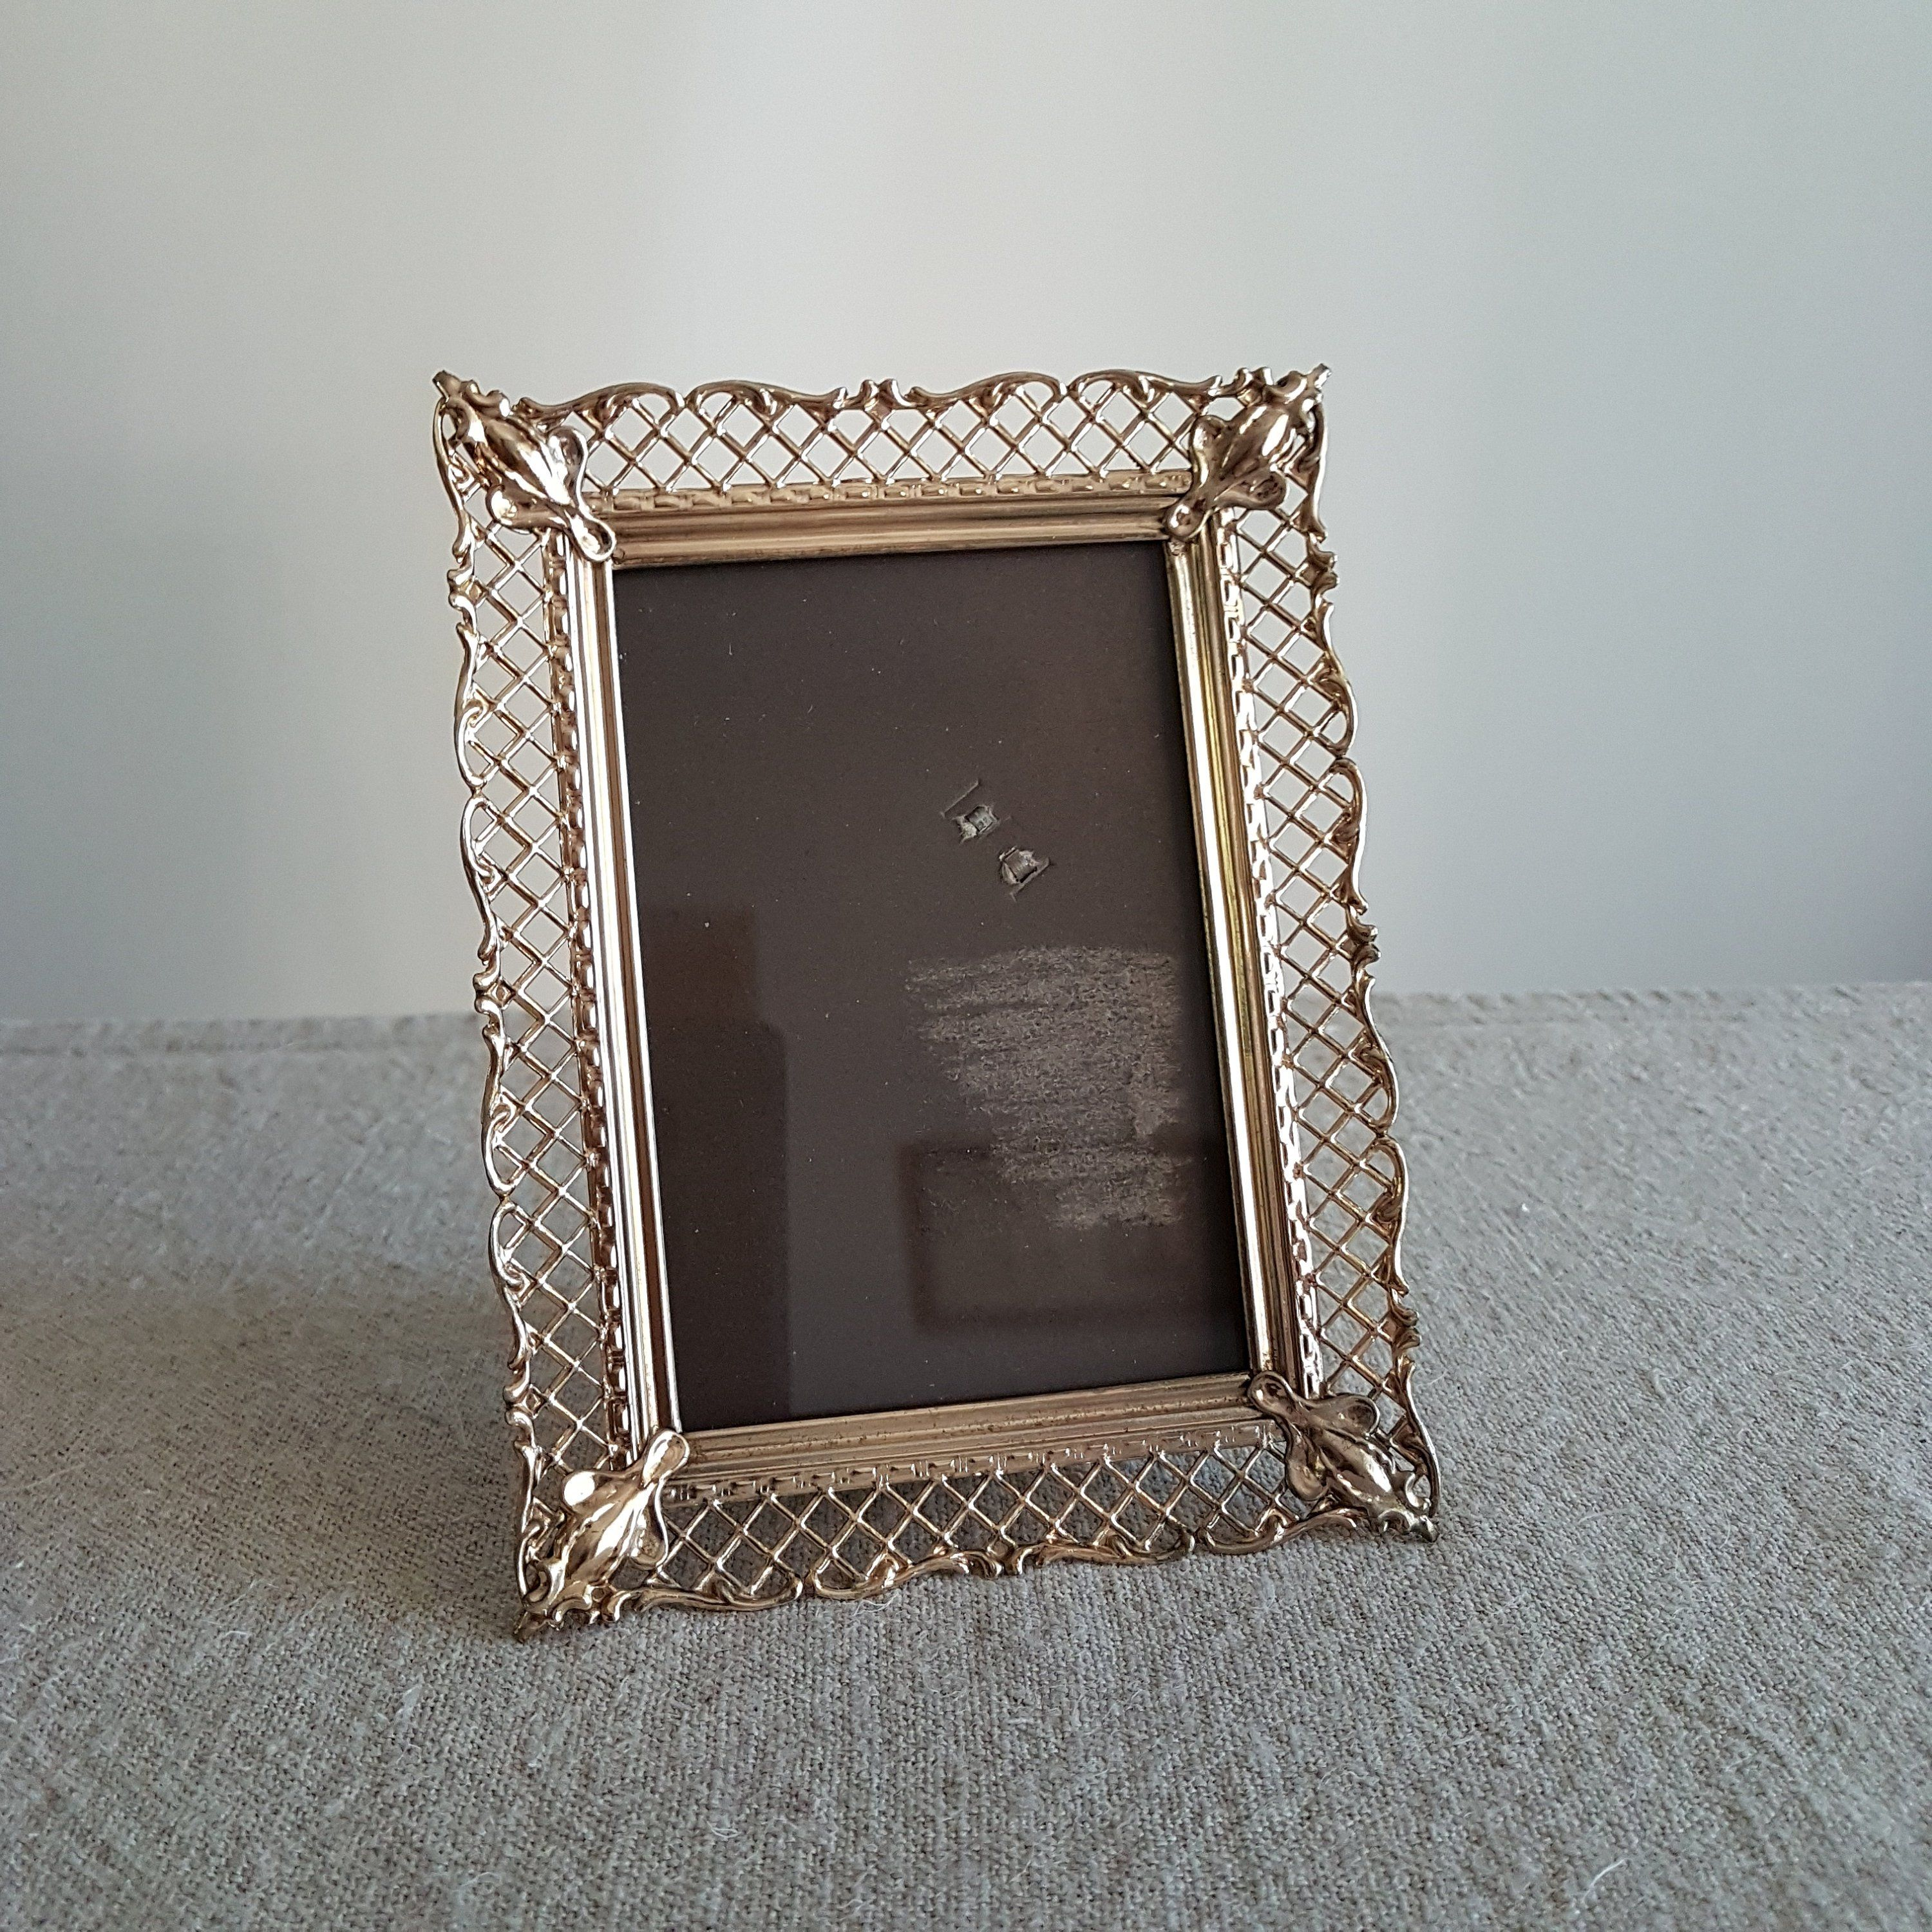 3 12 X 5 Gold Metal Picture Frame W Ornate Filigree Net Like